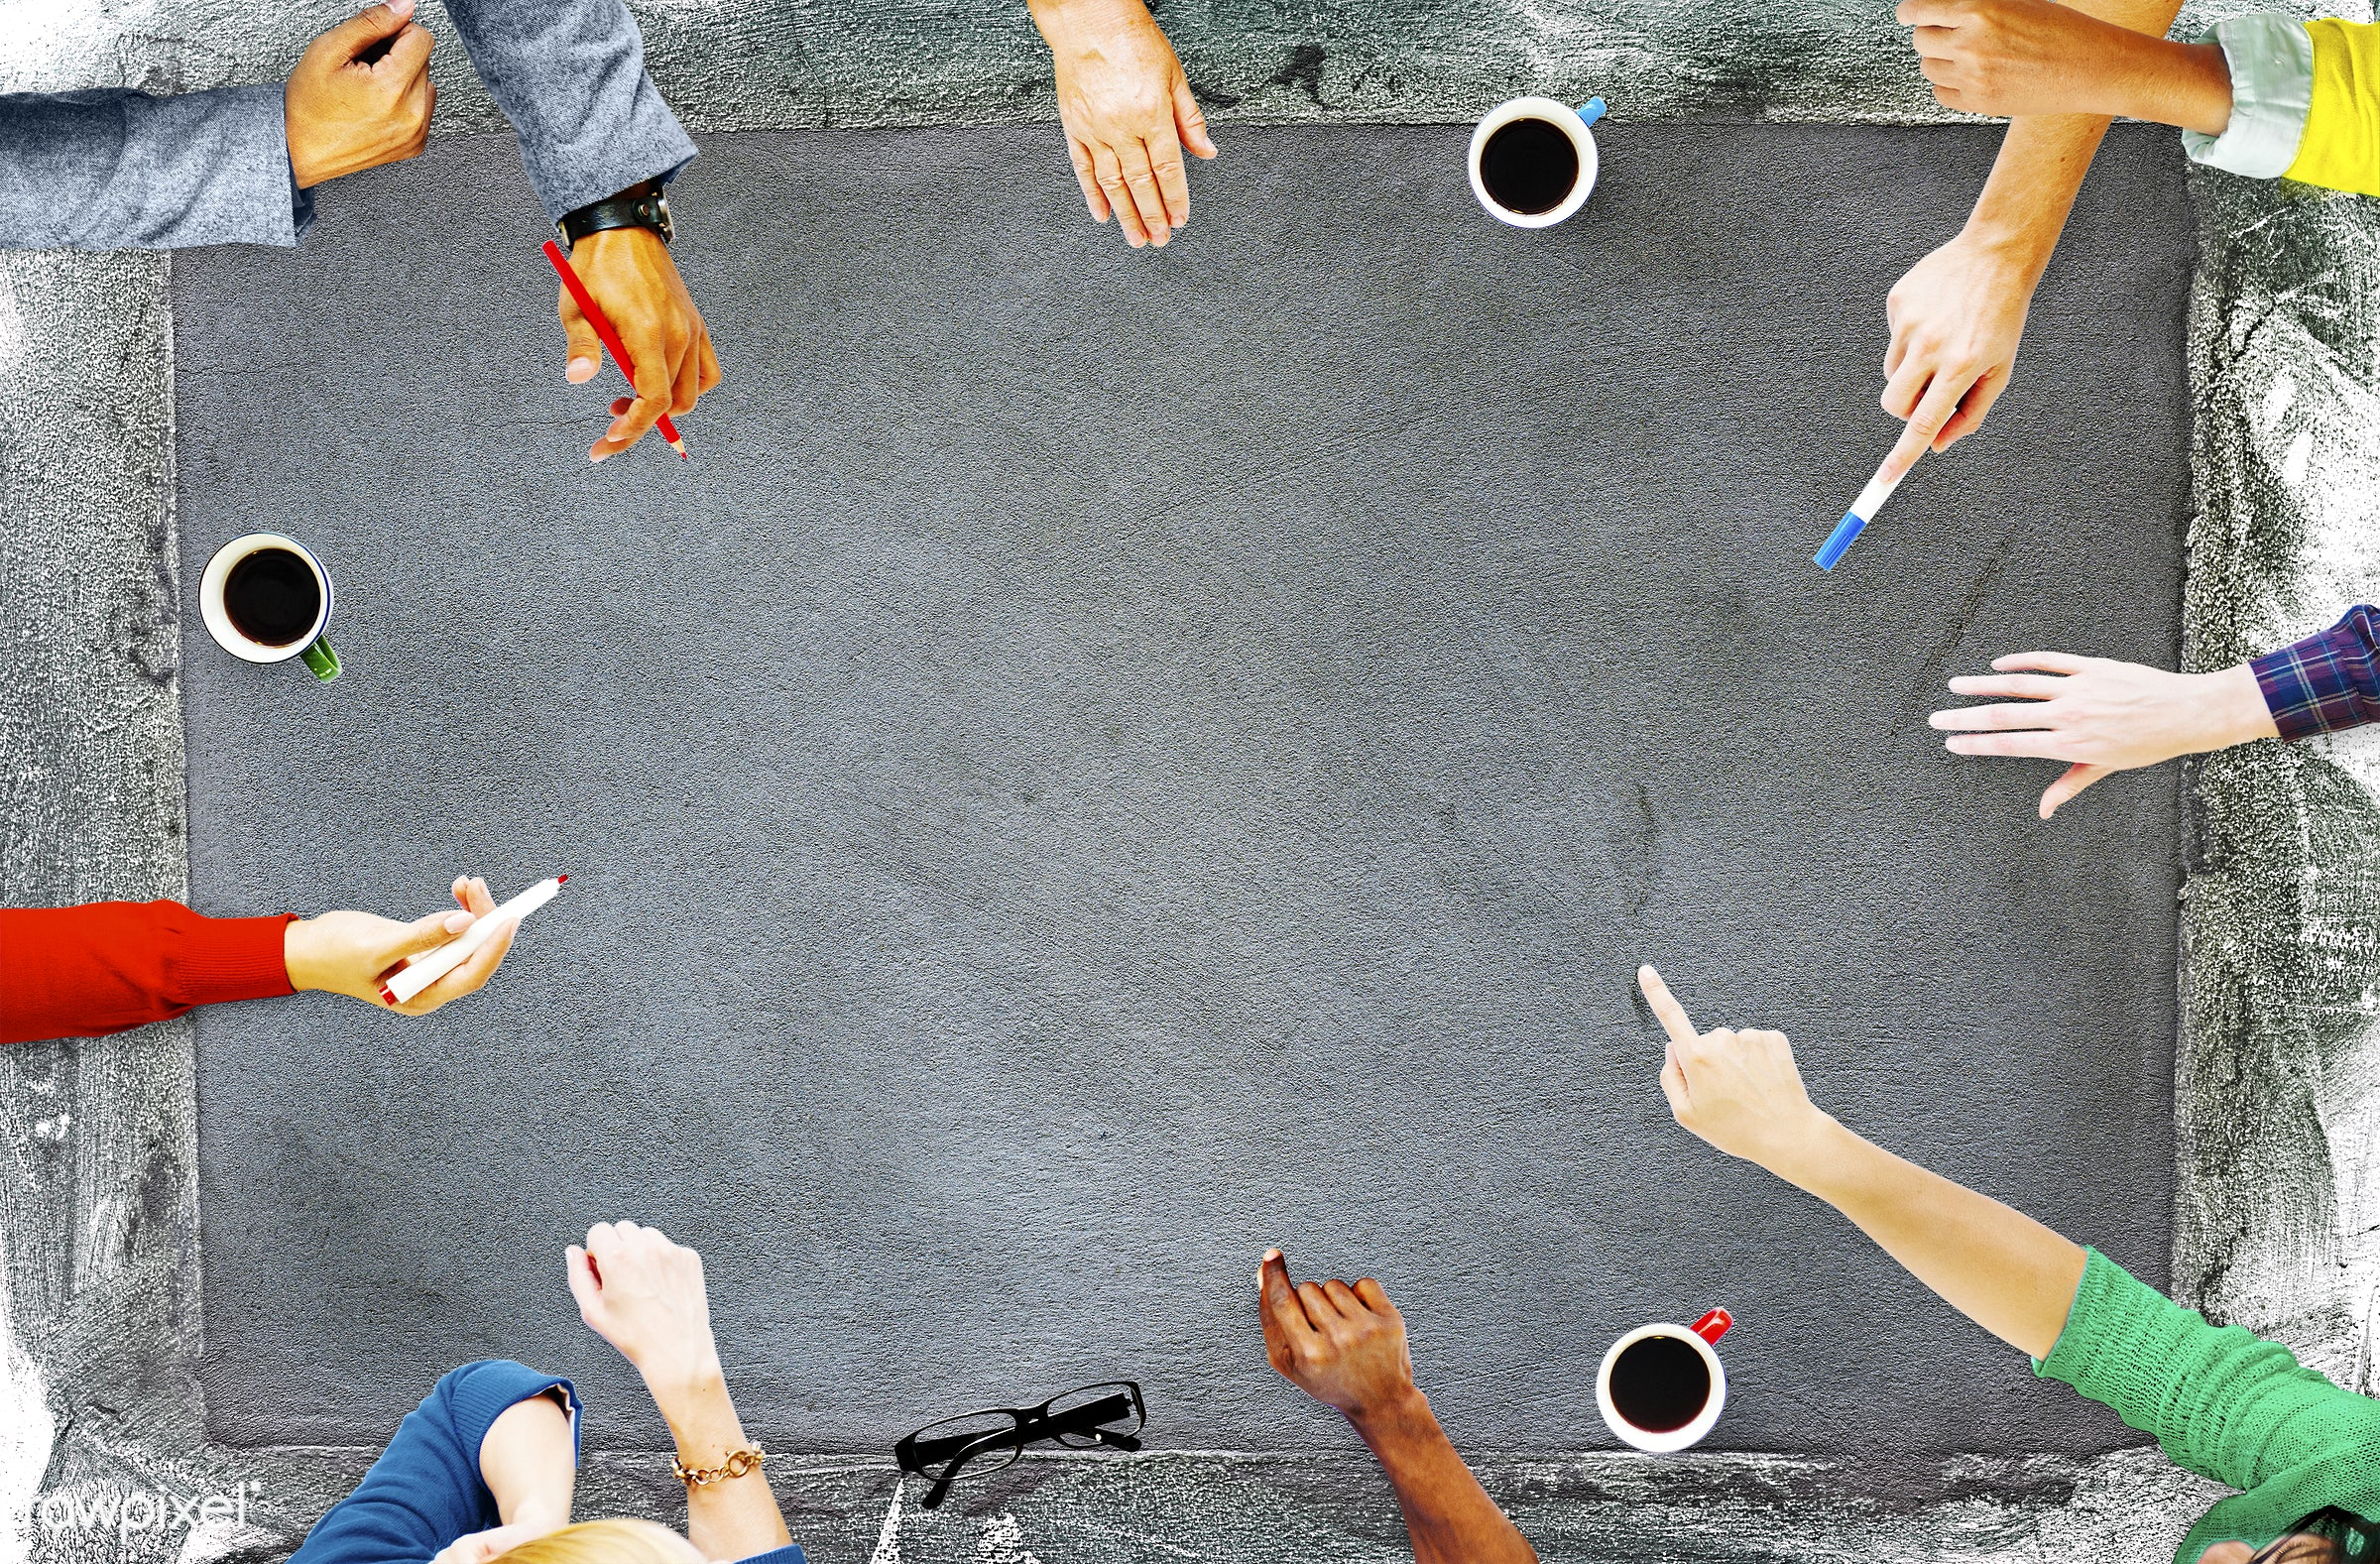 aerial view, arts, blank, brainstorming, business, business people, casual, communication, concrete, conversation, copy...